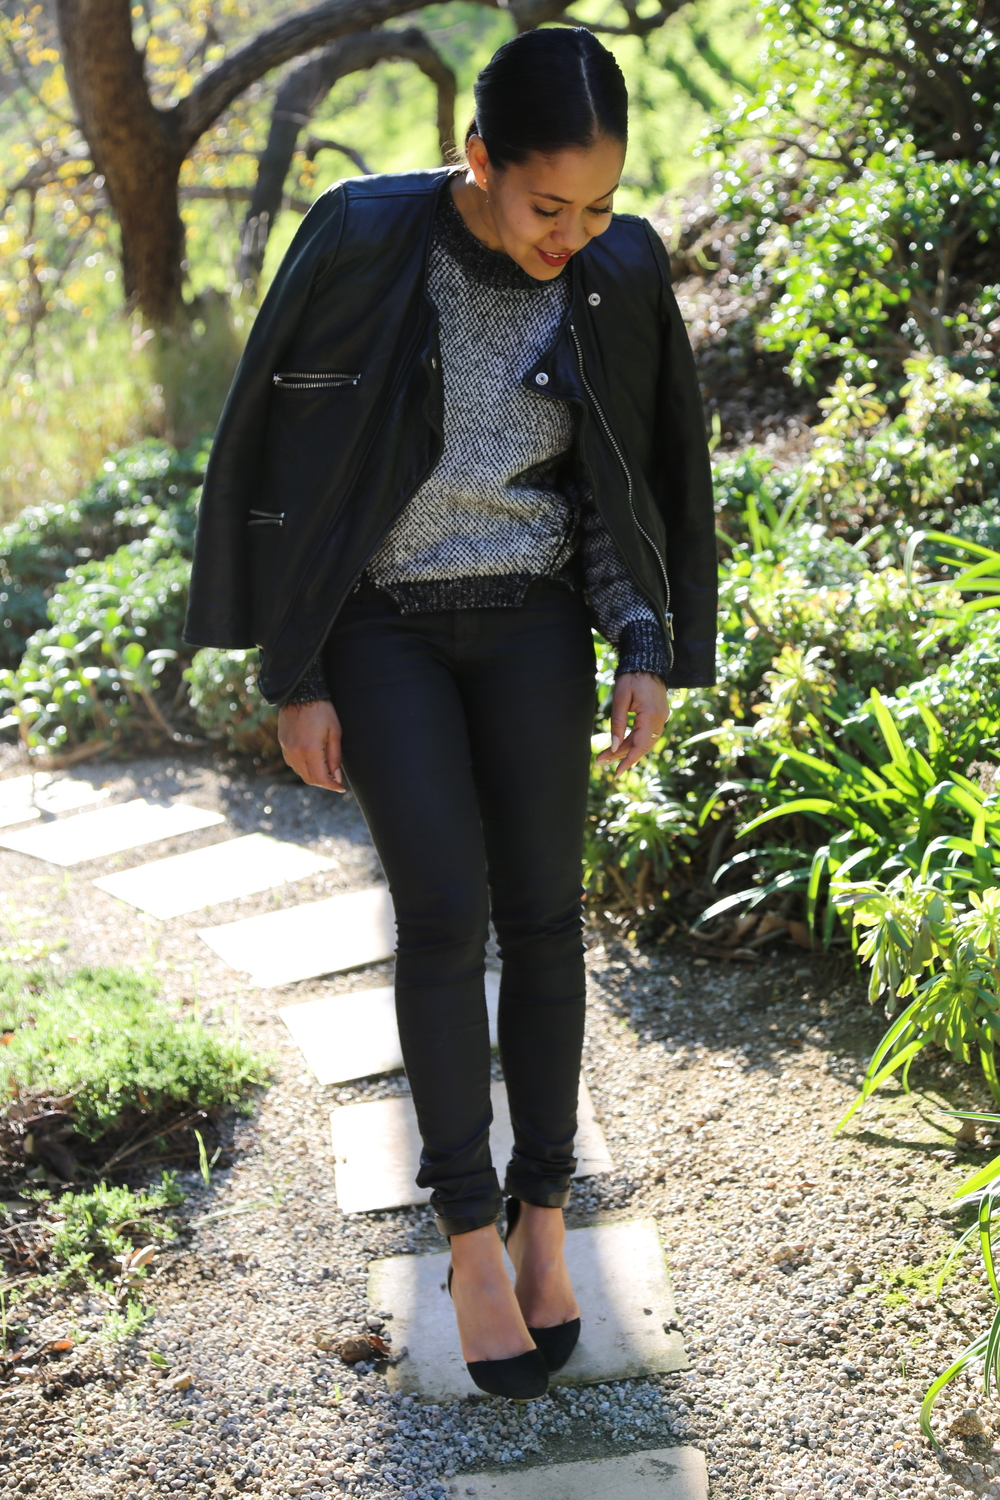 JONATHAN-SIMKHAI-SWEATER-WINTER-WEAR-ISABEL-MARANT-WEDGE-HEELS-MOTO-JACKET-ZARA-JEANS-LOS-ANGELES-VANESSA-BELETIC.JPG